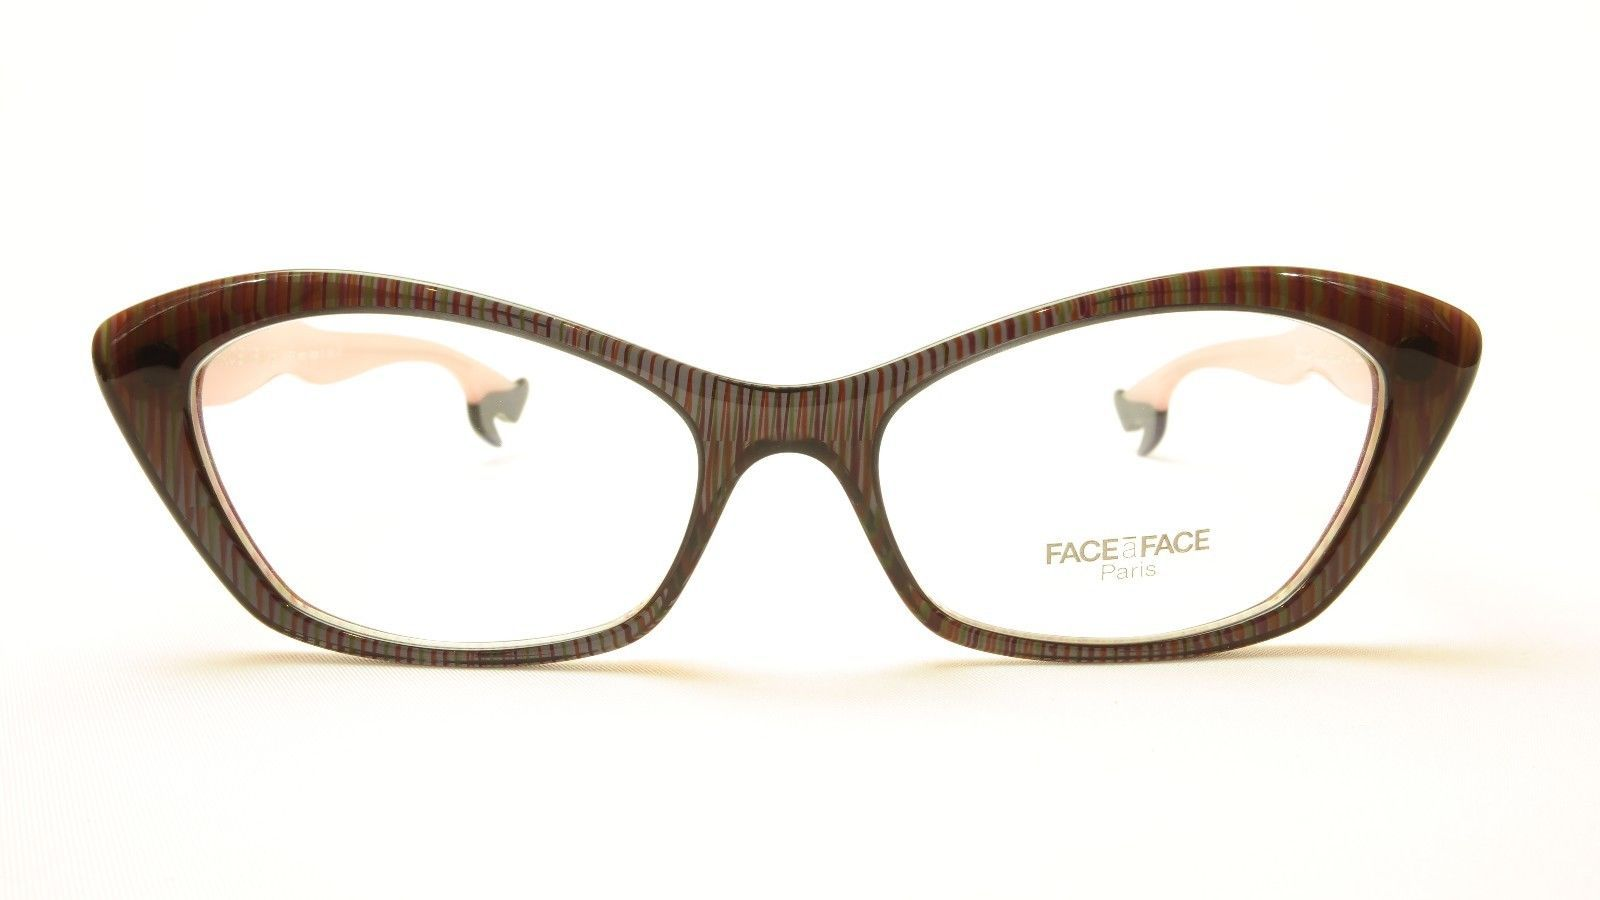 ee0961351fa Authentic Face A Face Bocca Rock 2 Col. 321 Violet White Eyeglasses Italy  Made